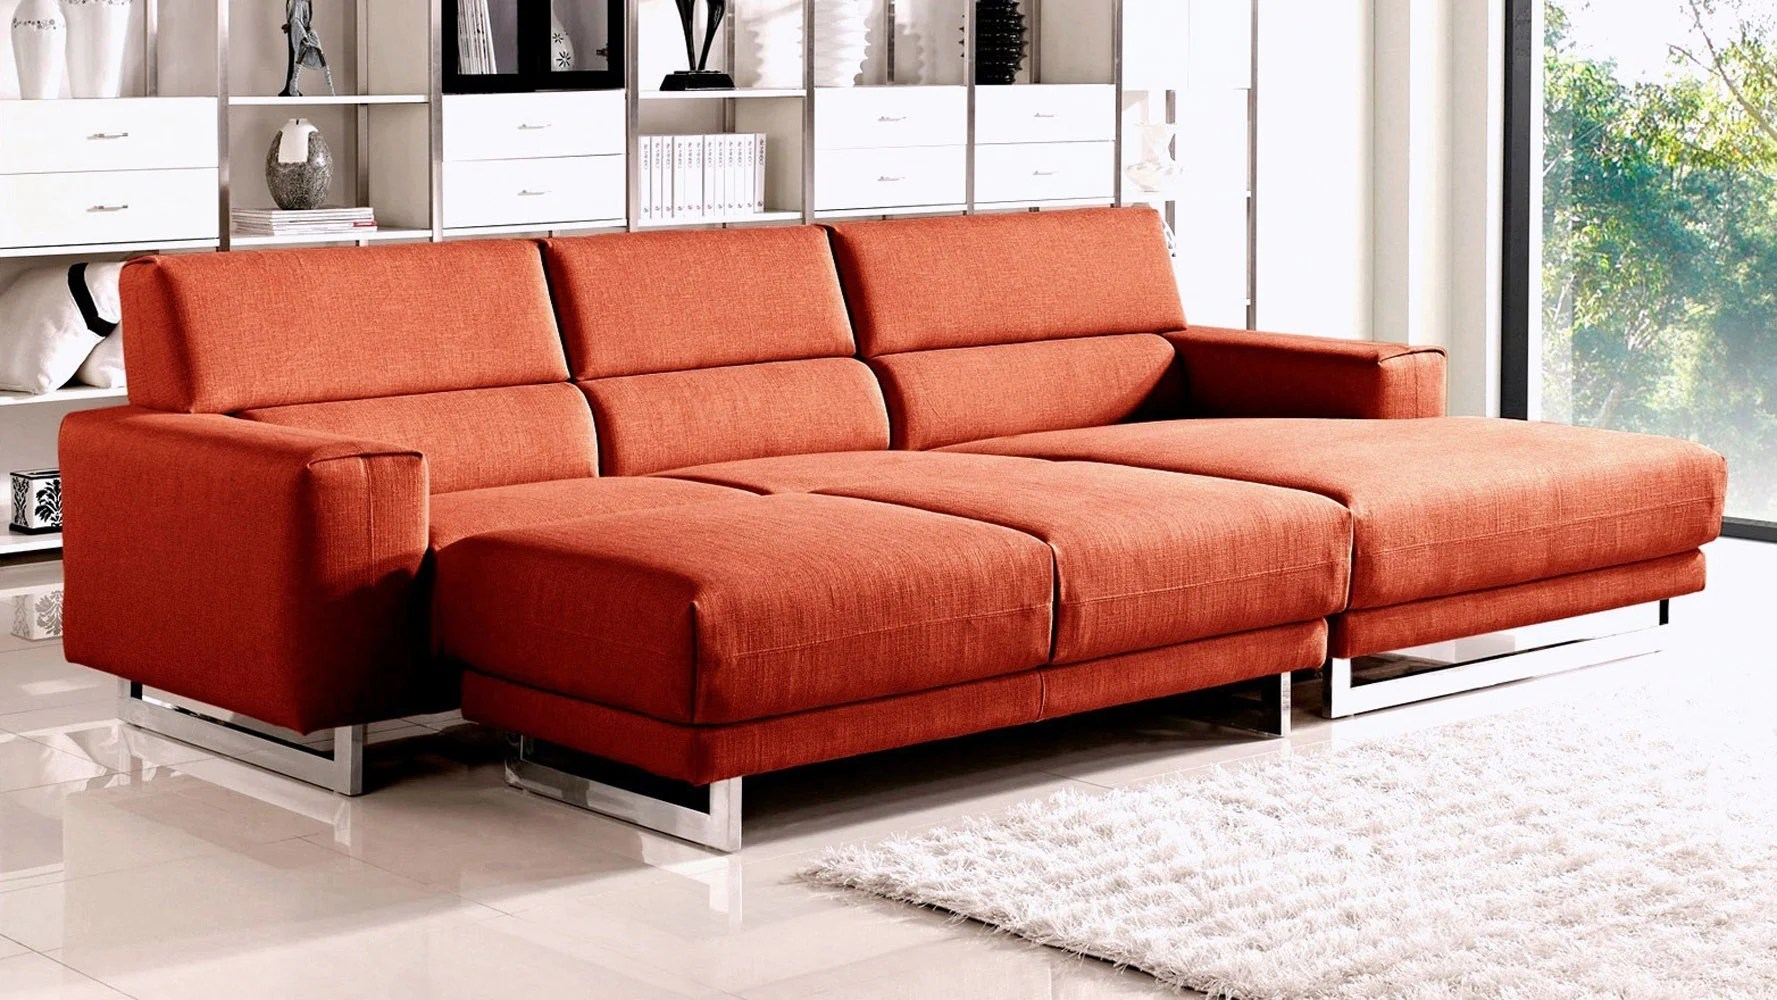 corinthian wynn sectional sofa half moon sofas leather fabric diva with sleeper ottoman zuri